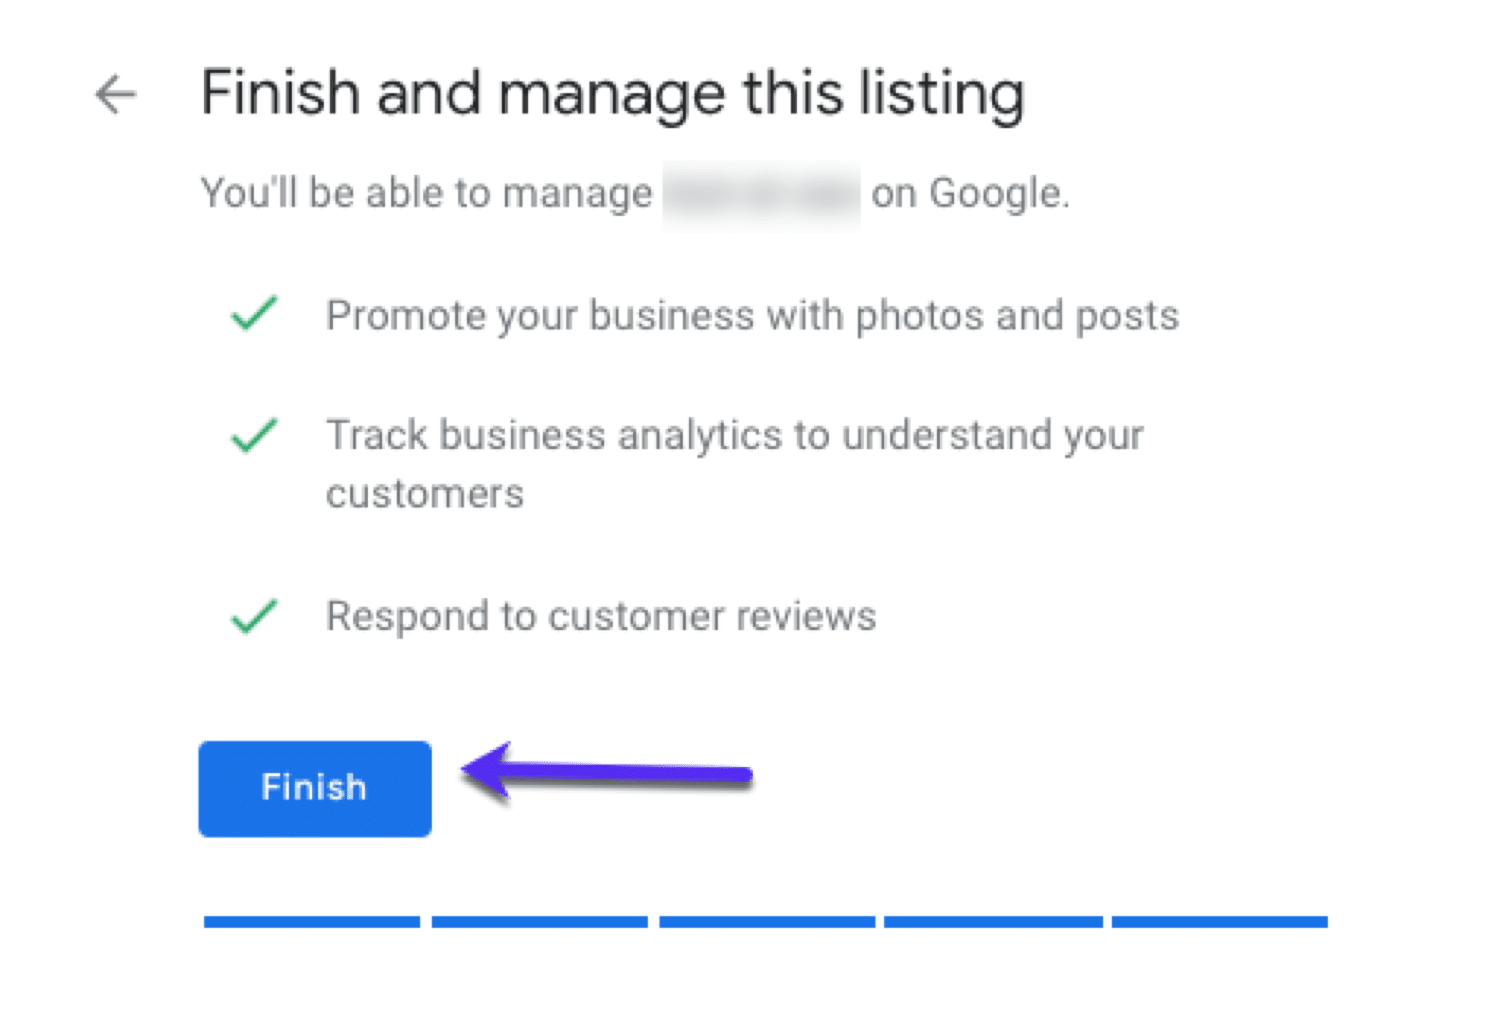 Finish and manage your GMB listing